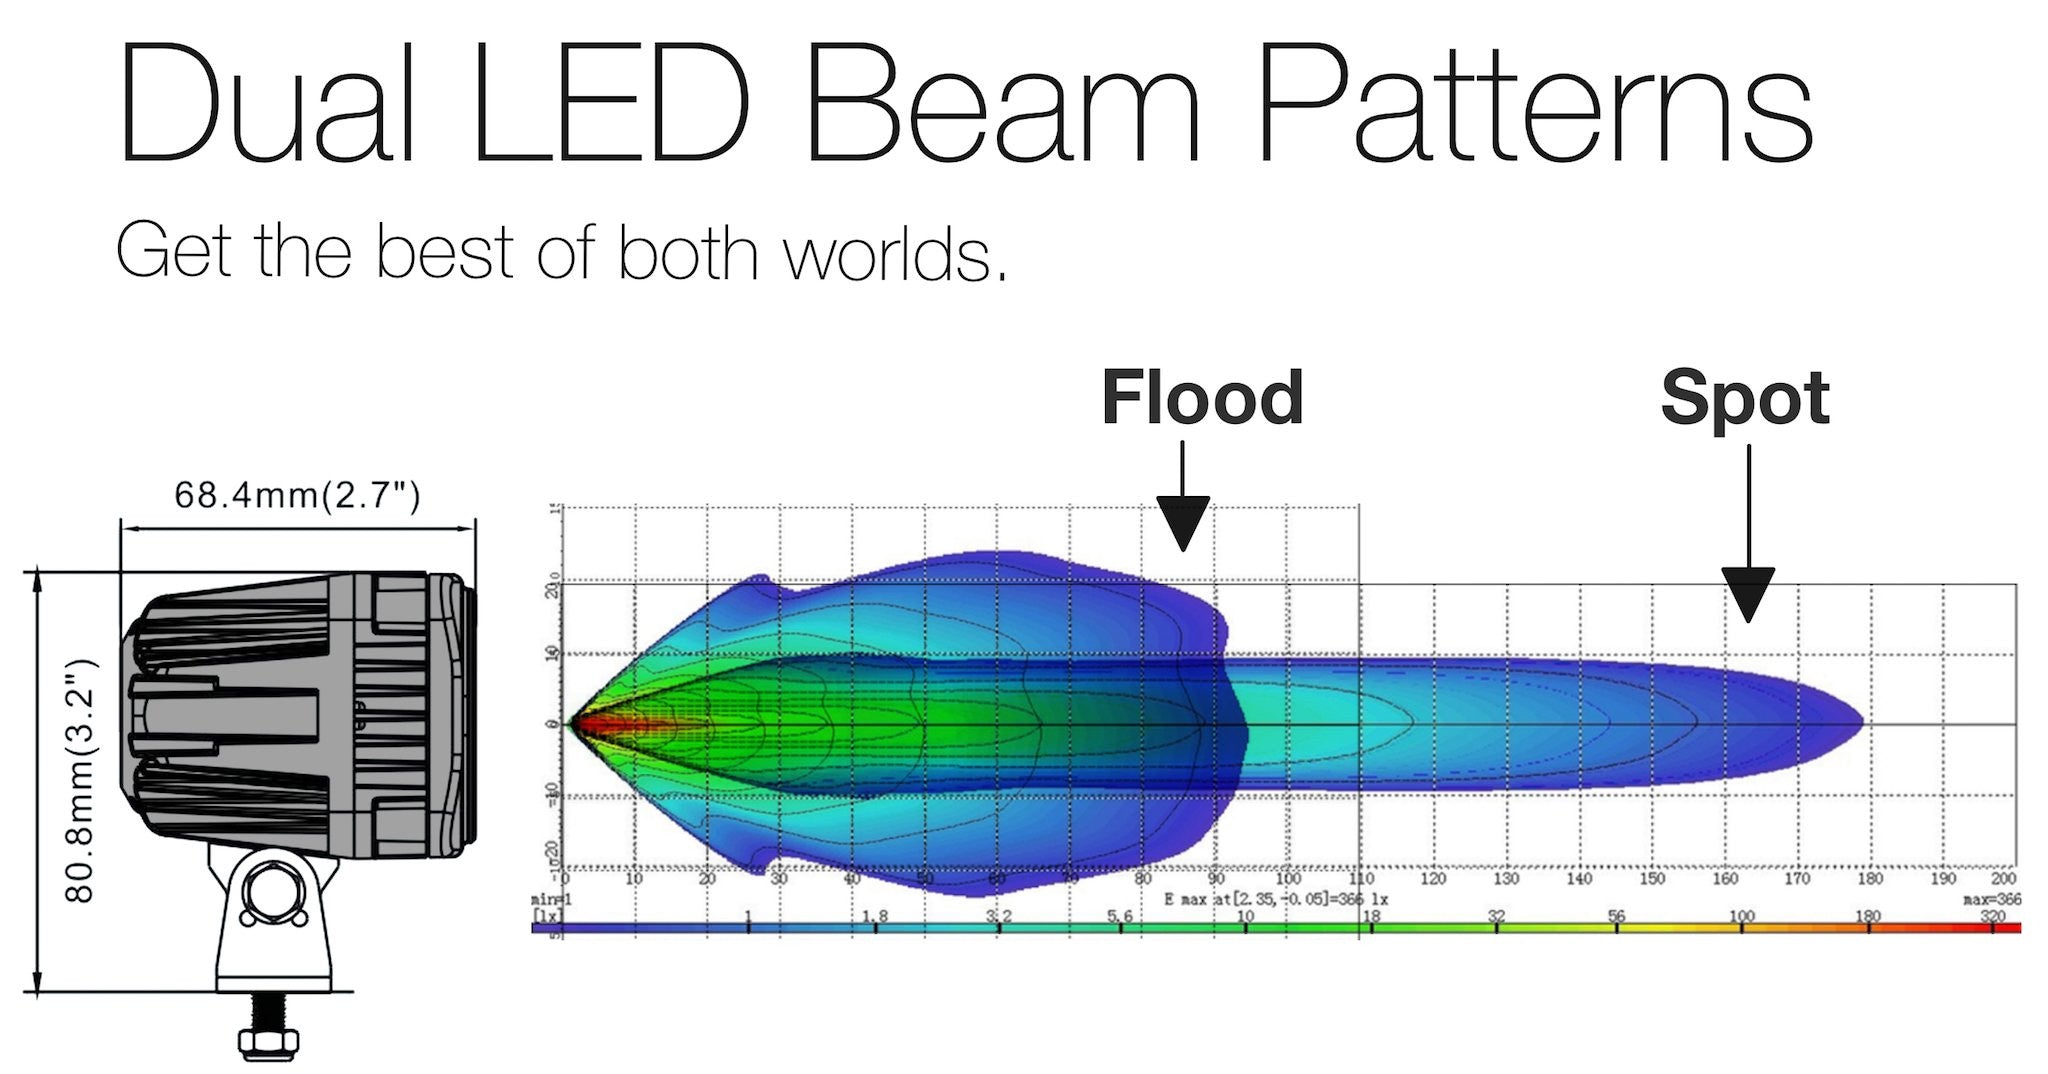 Dual LED Beam Patterns